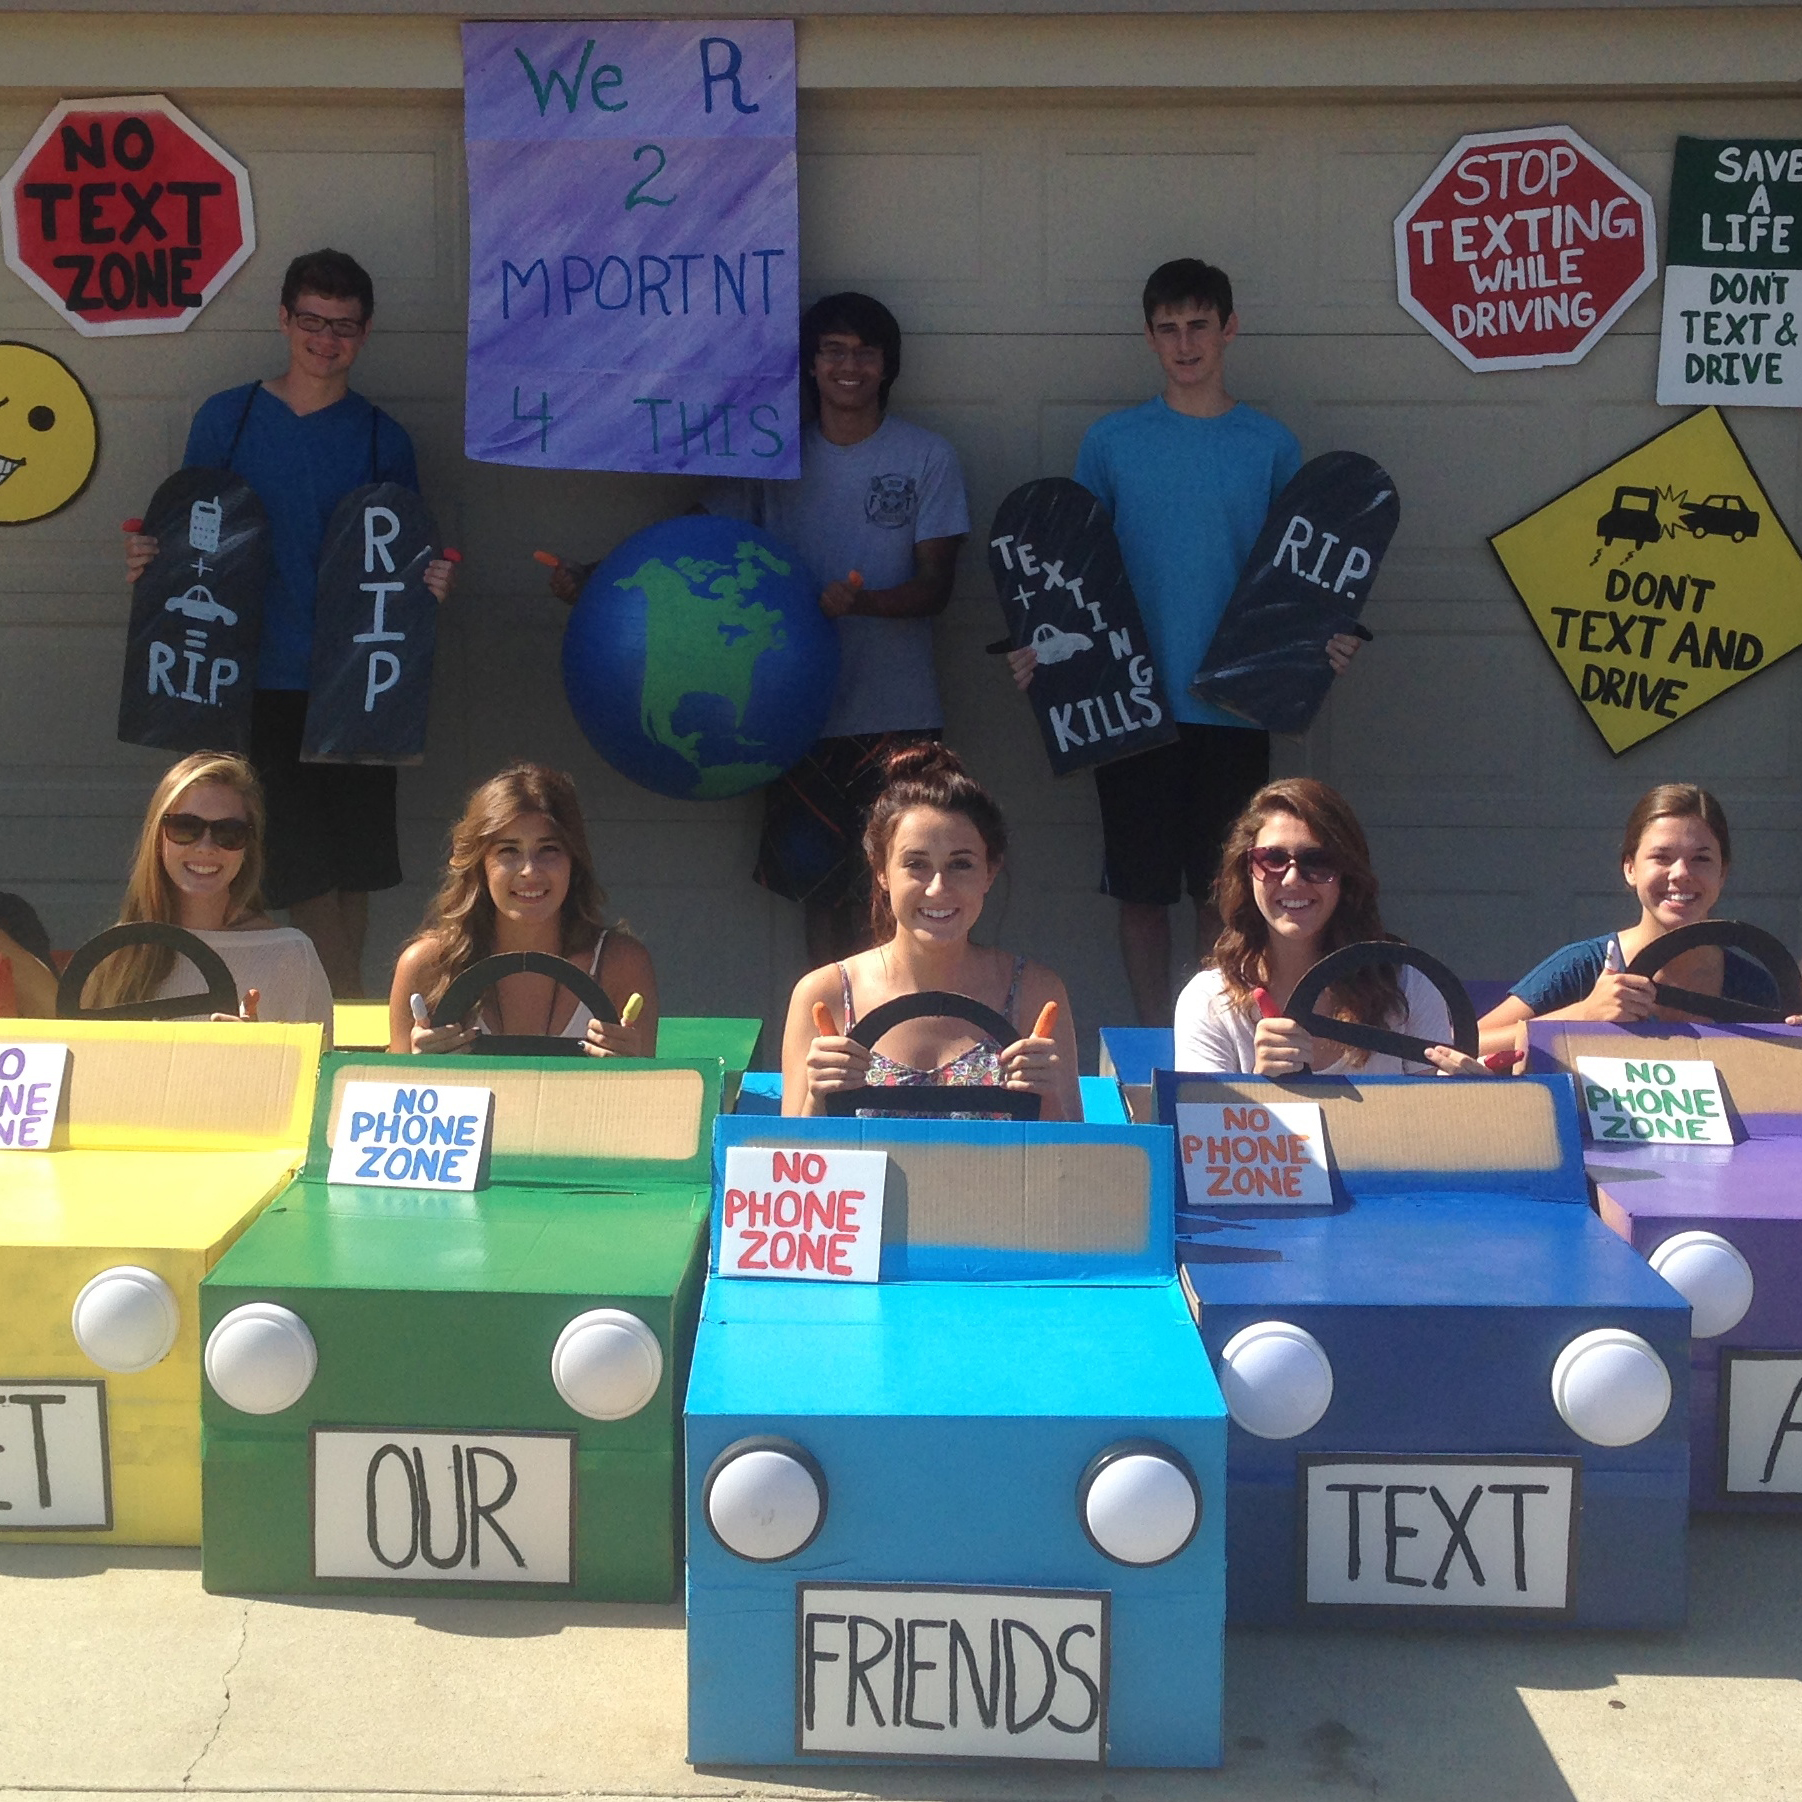 Kendra - -We actually made the cars out of cardboard boxes and used the left over cardboard to make the signs hanging in the background. We even painted one of our exercise balls to look like the word. I am very lucky to have the friends i .jpg